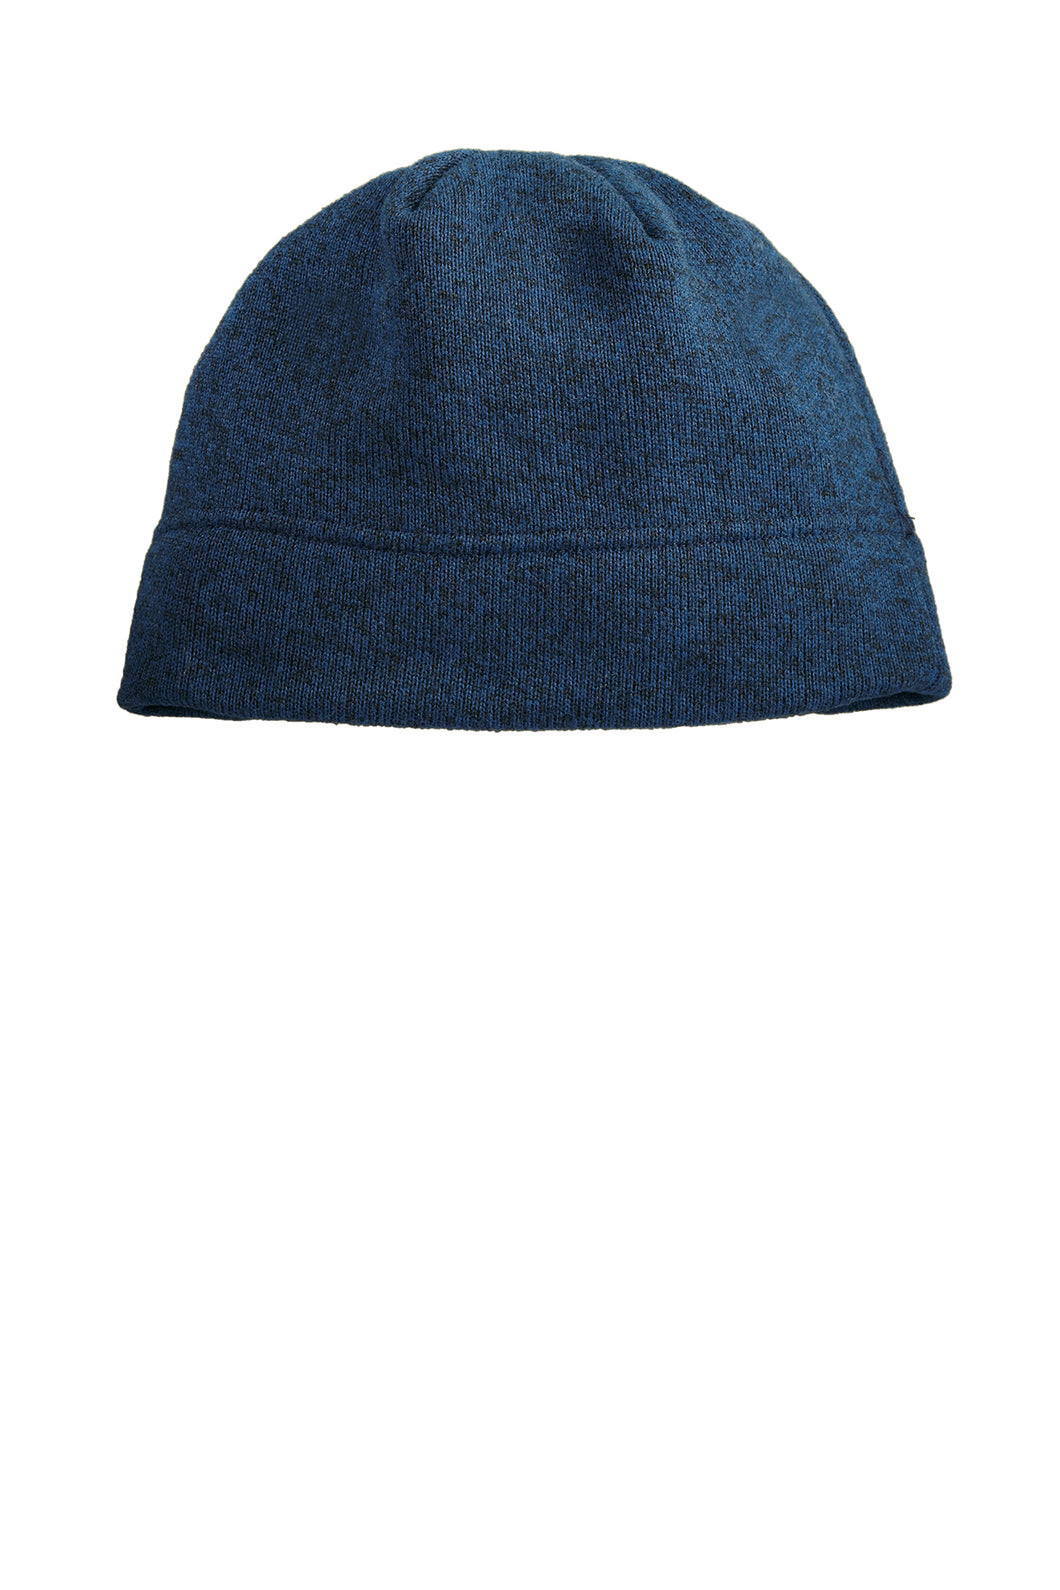 C917 **TEMPLATE** Heathered Knit Beanie (Color)